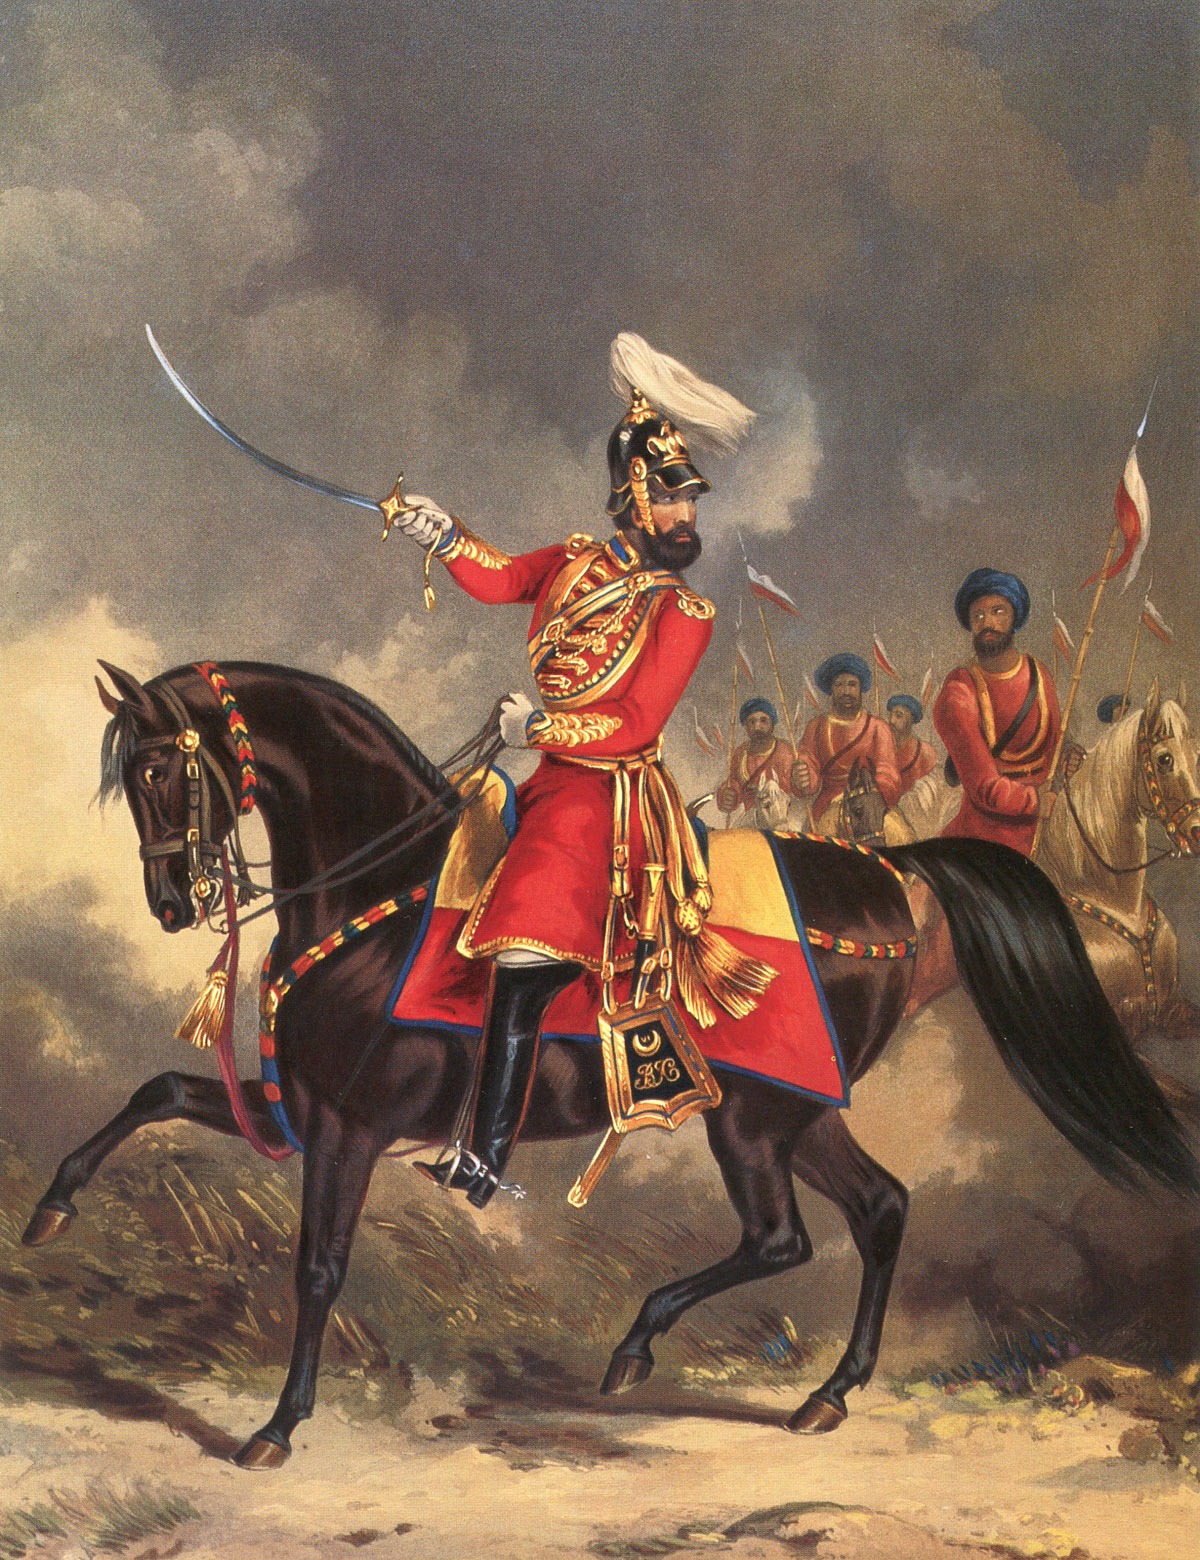 Bengal Irregular Cavalry: Battle of Goojerat on 21st February 1849 during the Second Sikh War